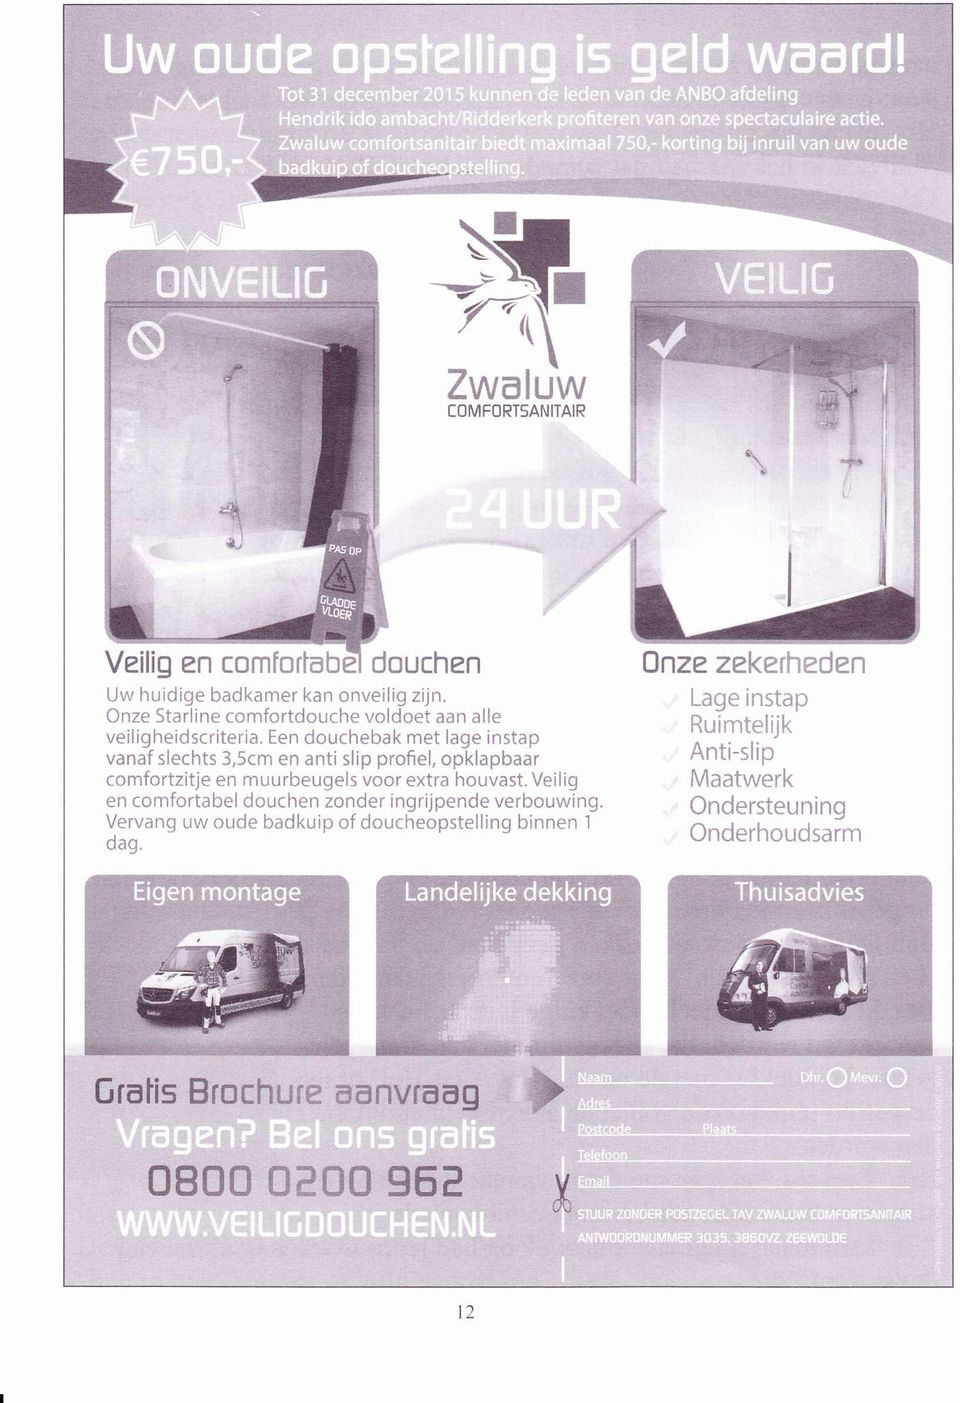 :iiir:ri-it-,:.i iraitala:i\'.at.a-t,ïi,tl.c)rrri,t!i',/i.,lt'l.-'.,i-, trii,' i.ti;. it:ri,ri;:rjr,,i-.triii itr-it:irl.